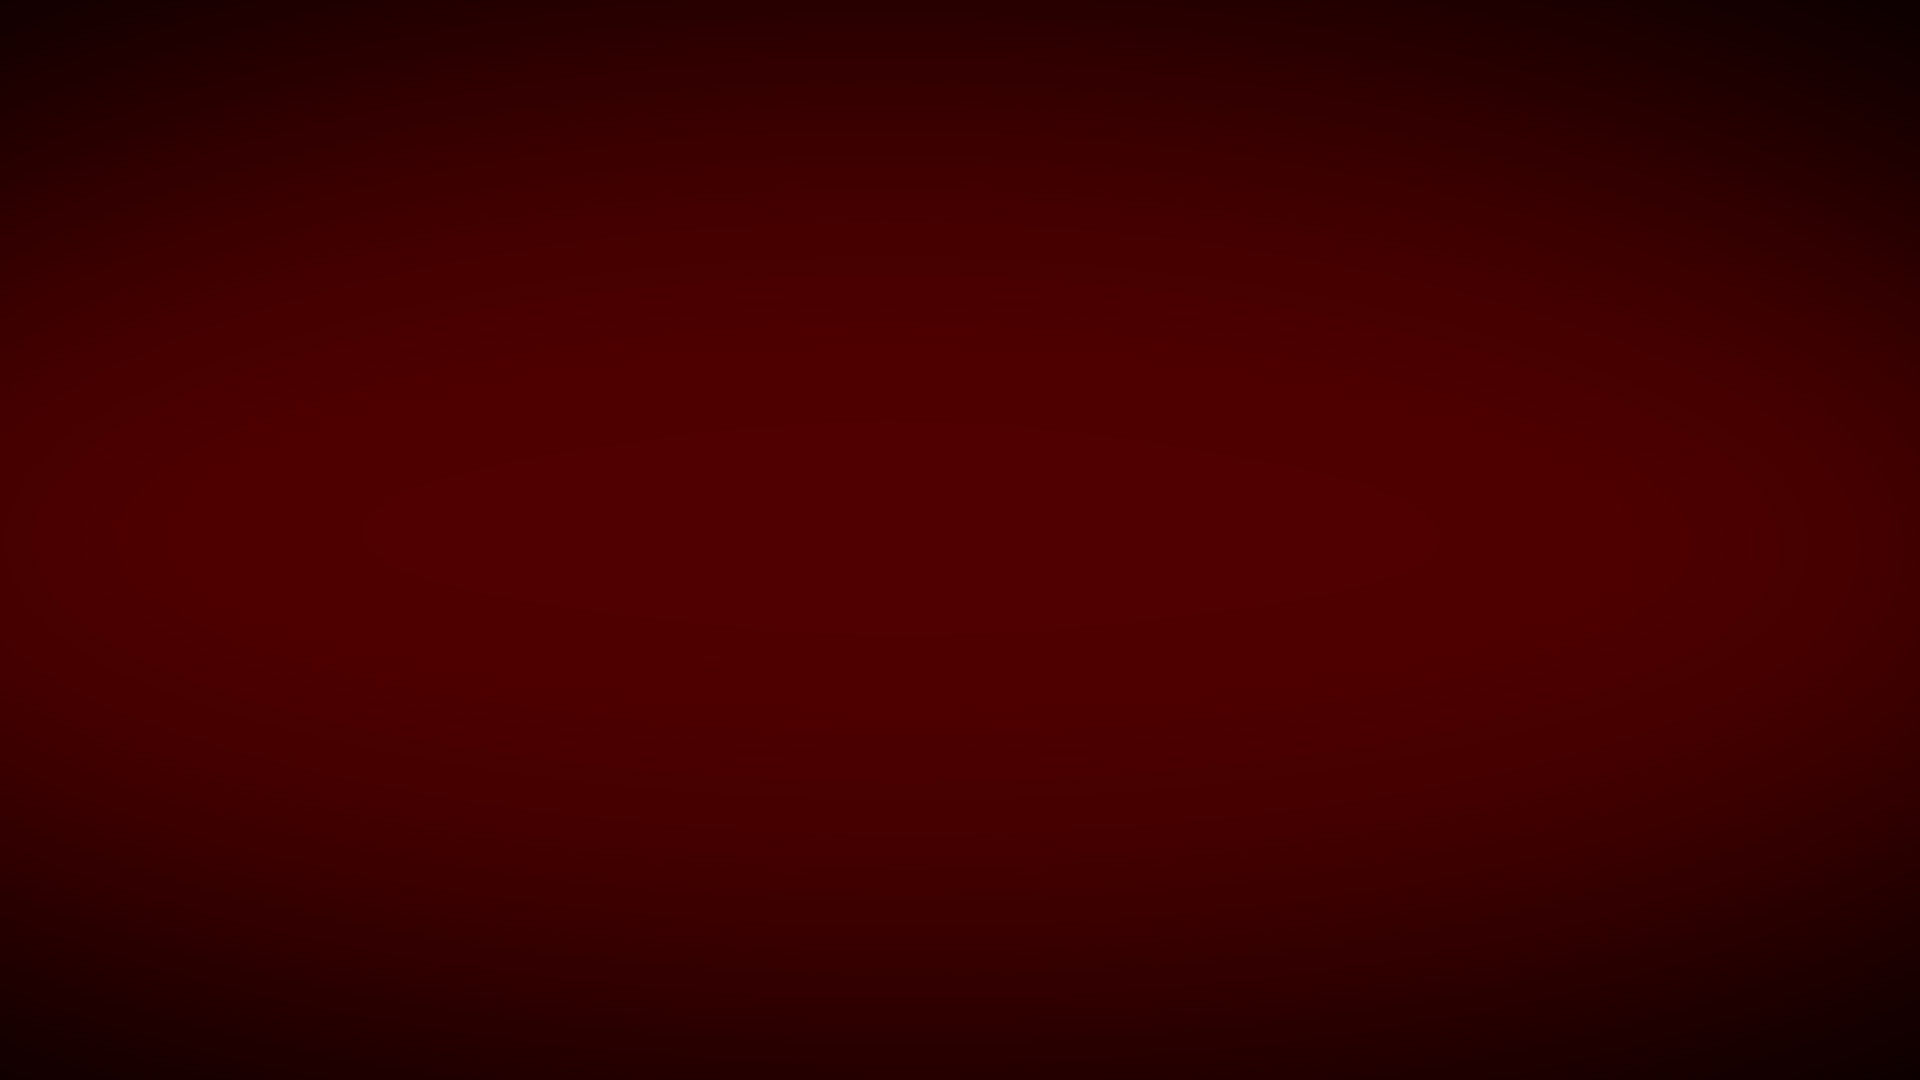 maroon background ios src maroon background ios background maroon hd 1920x1080 download hd wallpaper wallpapertip maroon background ios src maroon